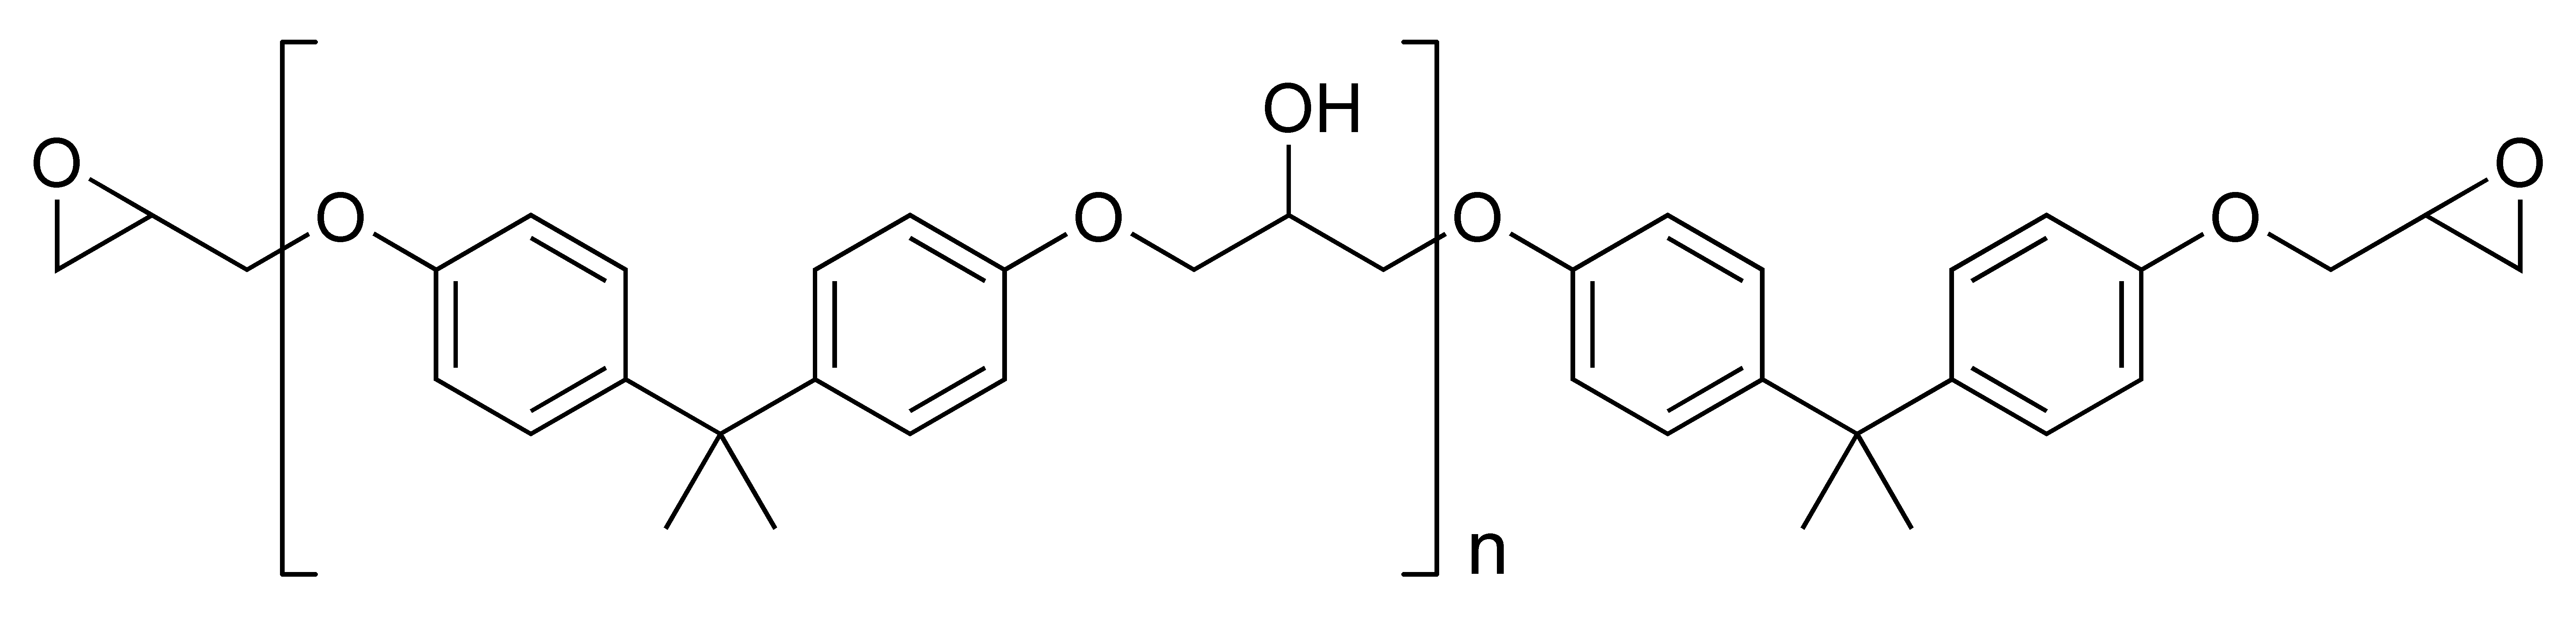 File:Epoxy prepolymer chemical structure.png - Wikimedia ...